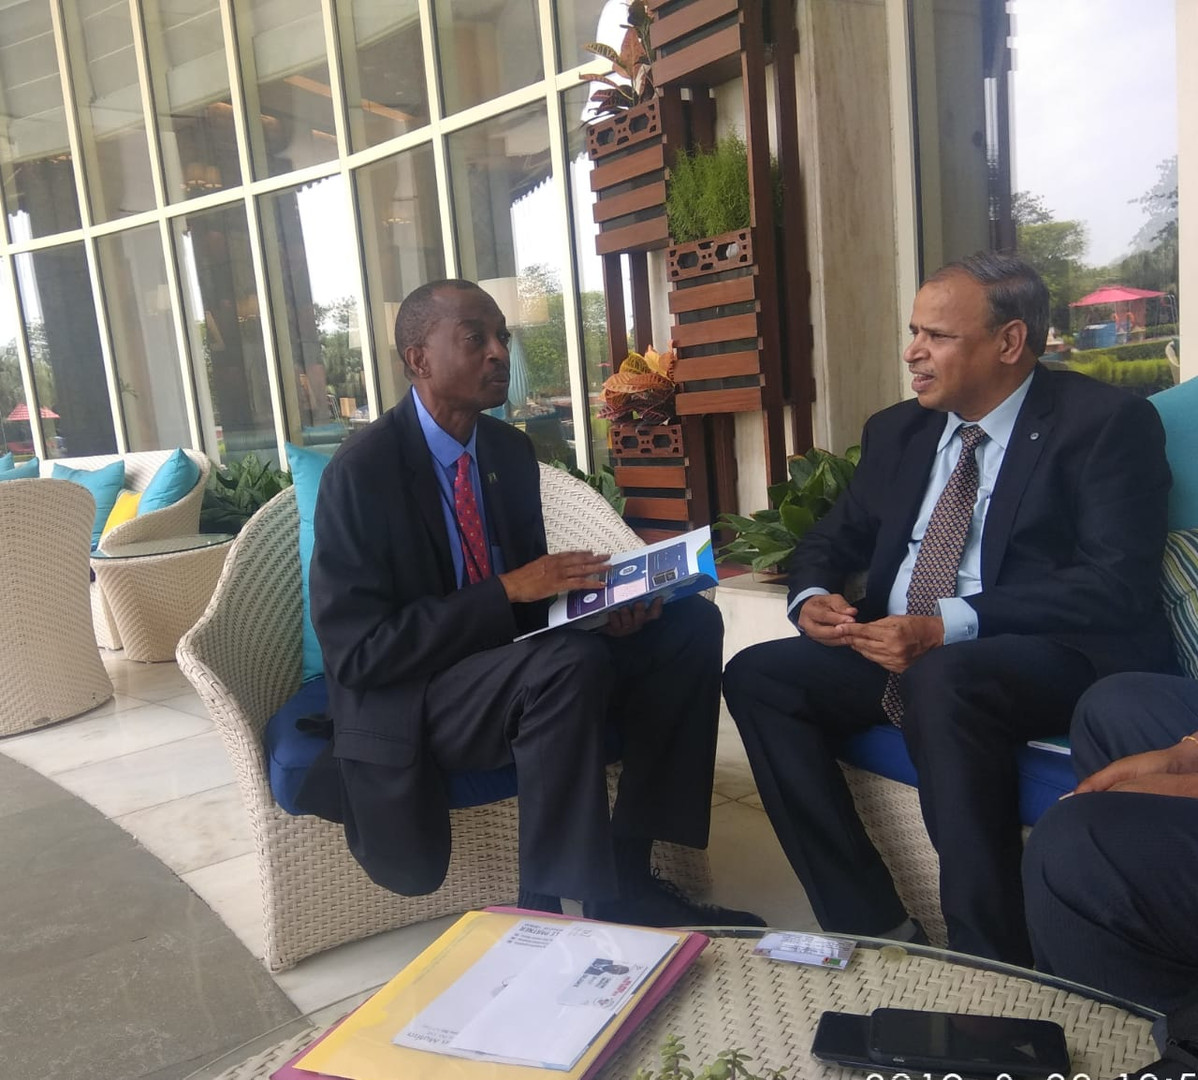 Maithri Aquatech's Managing Director, Mr. M. Ramkrishna with his Excellency, the Deputy High Commissioner of Zambia, Mr. H. Sikapale Chinzewe, discussing water availability and about the MEGHDOOT Atmospheric Water Generator.